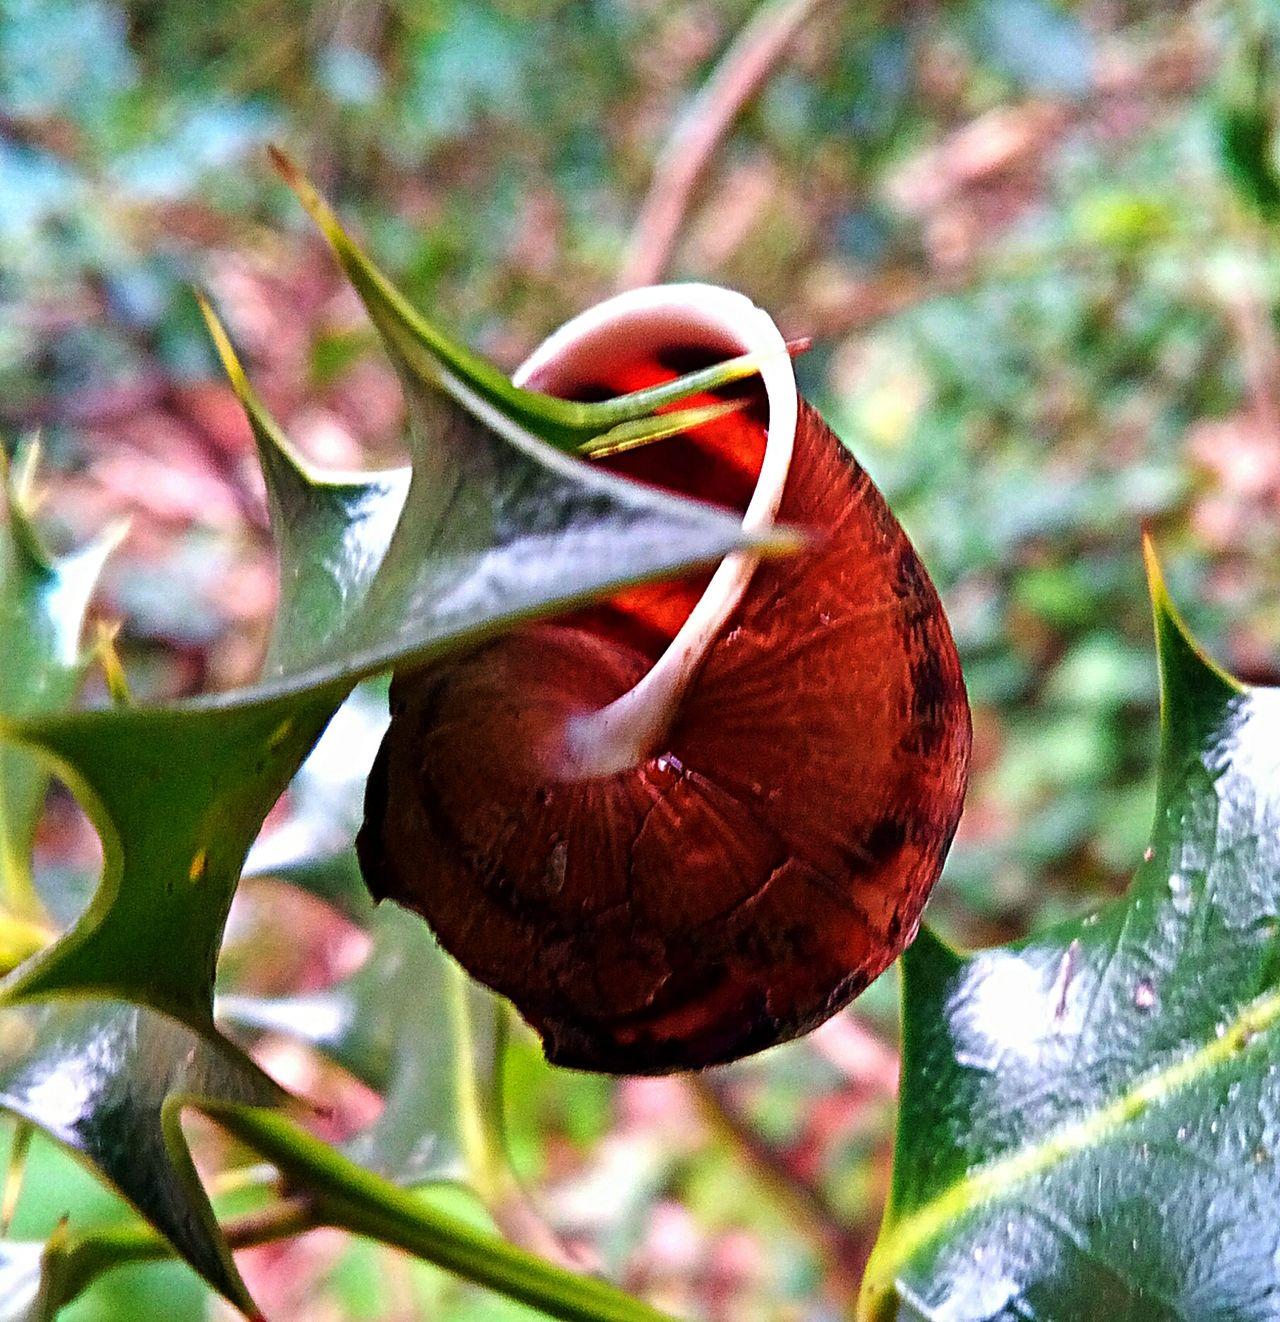 Growth Nature Close-up Plant Focus On Foreground Beauty In Nature Detail Macro Photography Snail Shells Artiseverywhere Eyemphotography